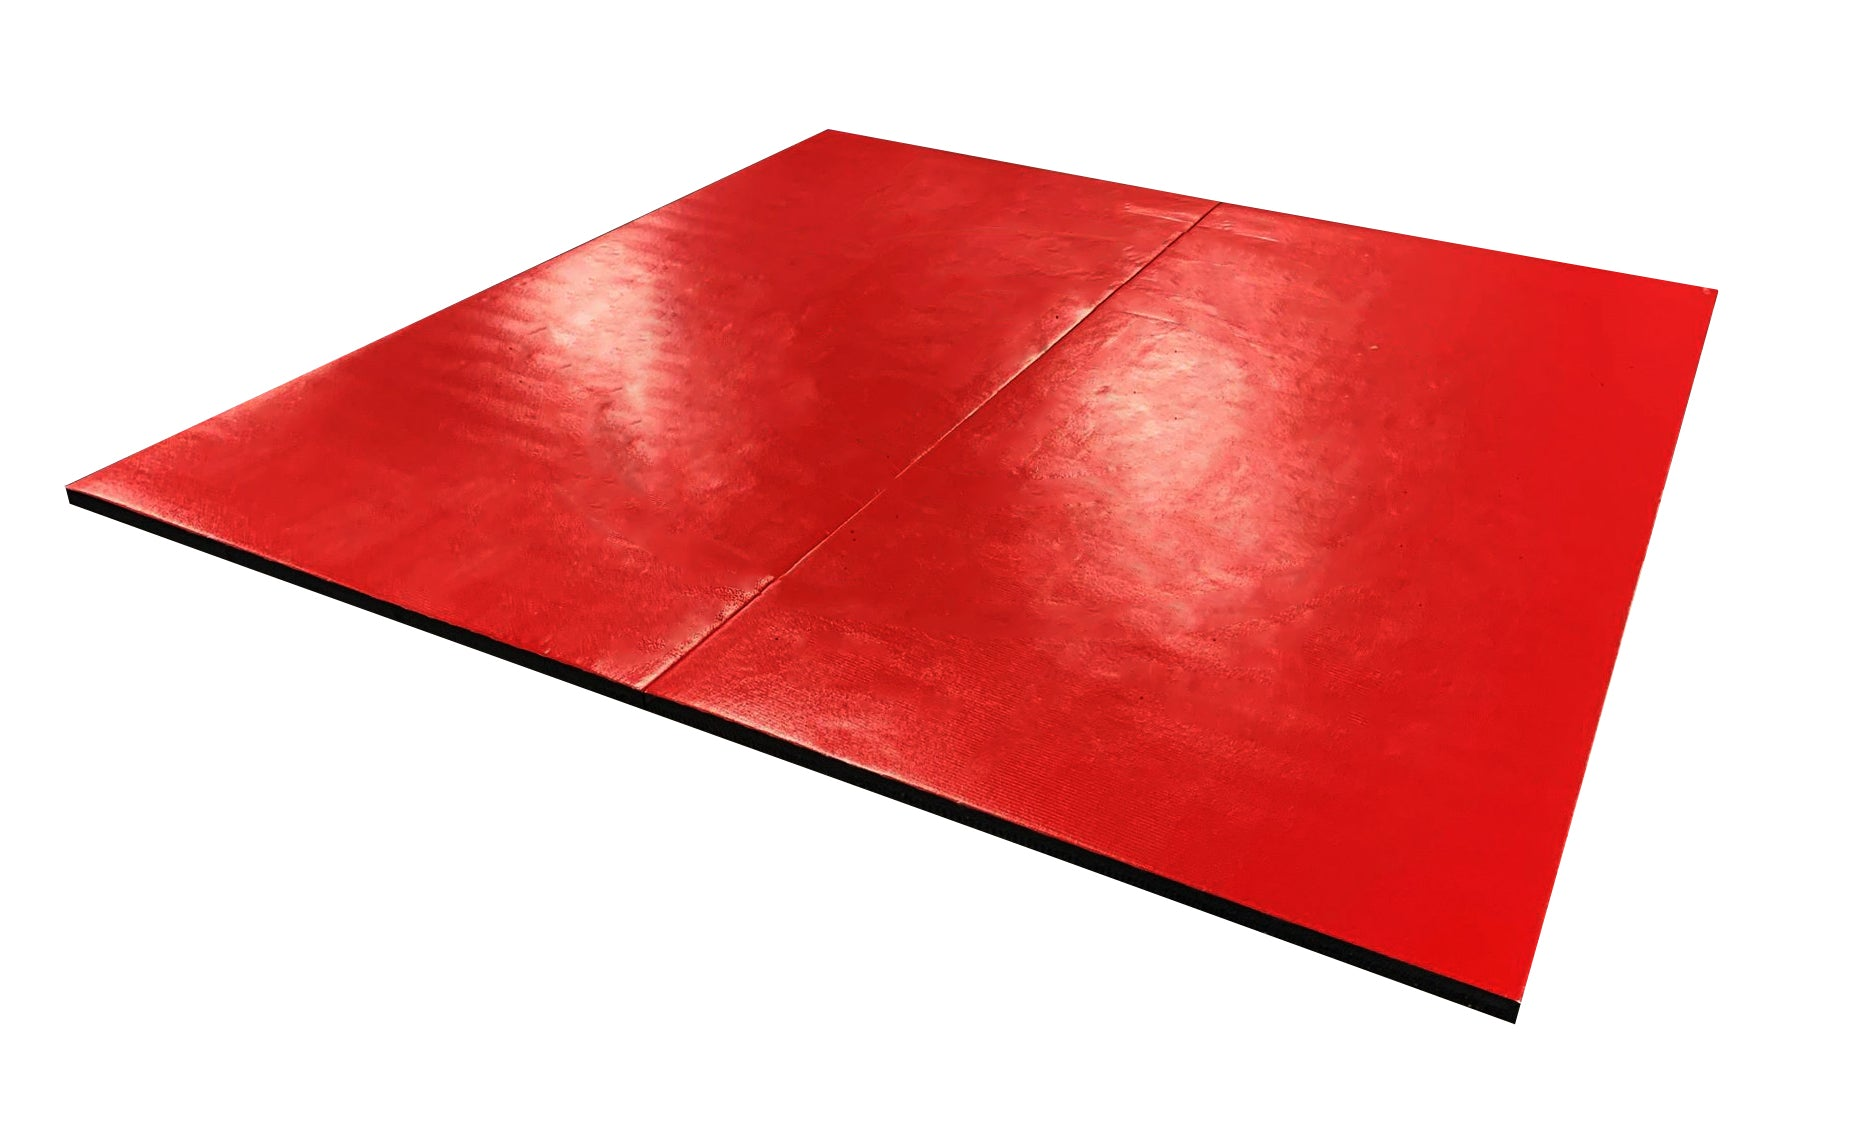 "Grip Safe 8' x 8' x 1 3/8"" Roll-Up Wrestling Mat"